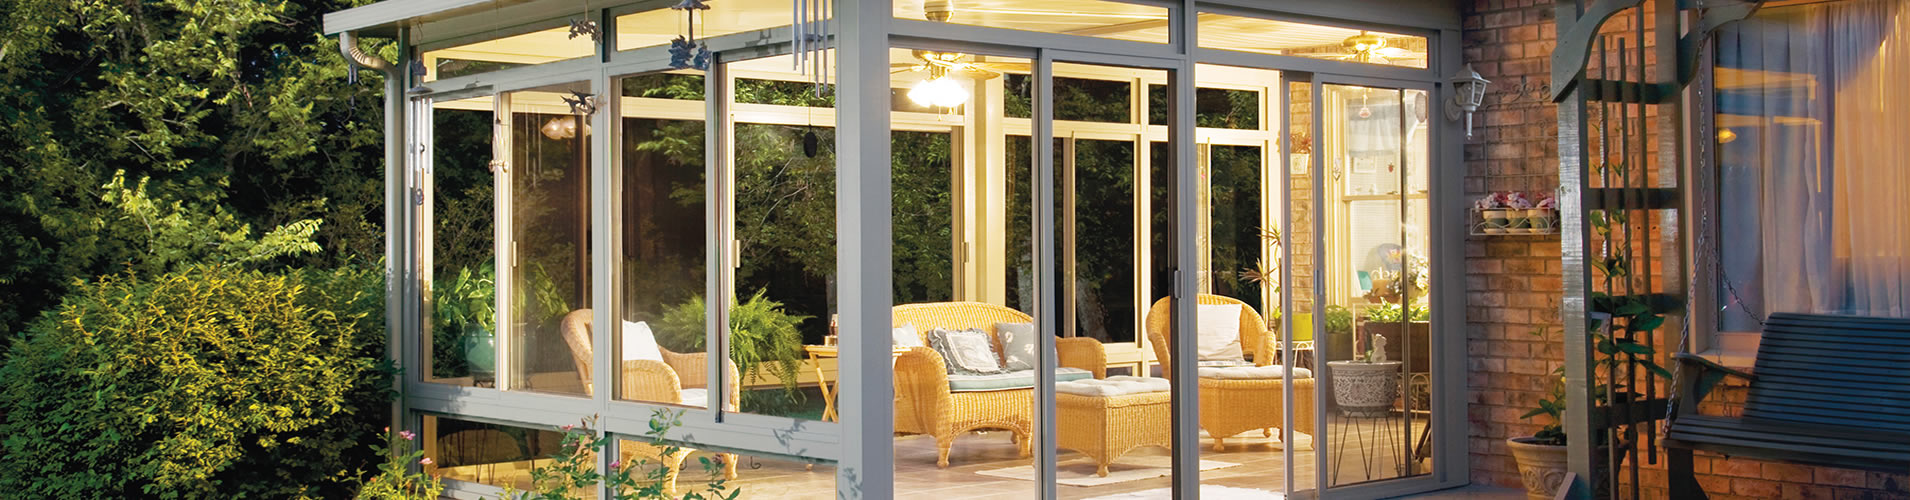 Austin Shades Shutters Patio Screens Amp Awnings The